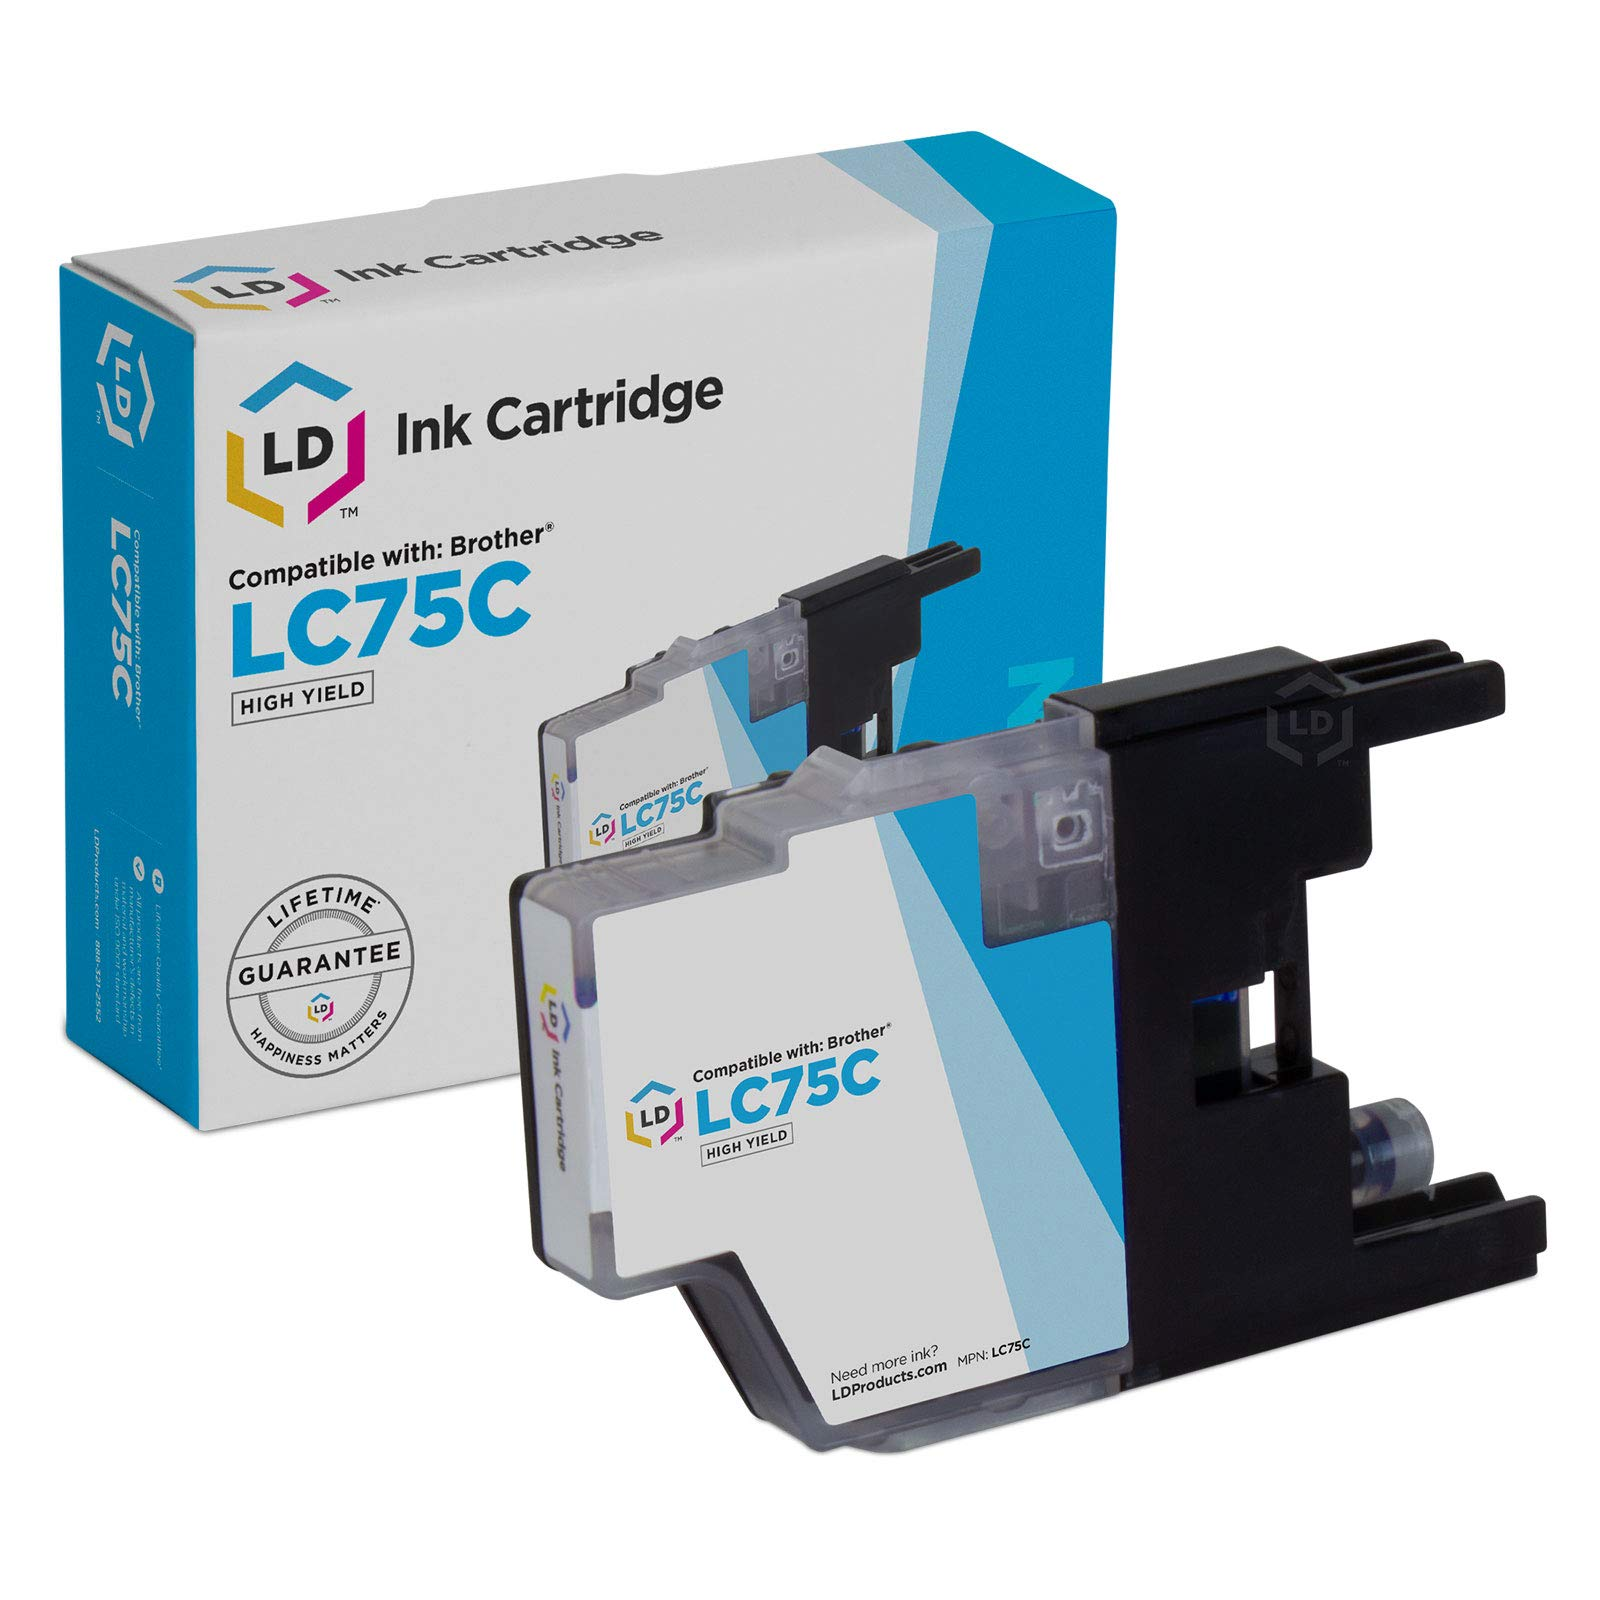 LD Compatible Ink Cartridge Replacement for Brother LC75C High Yield (Cyan)